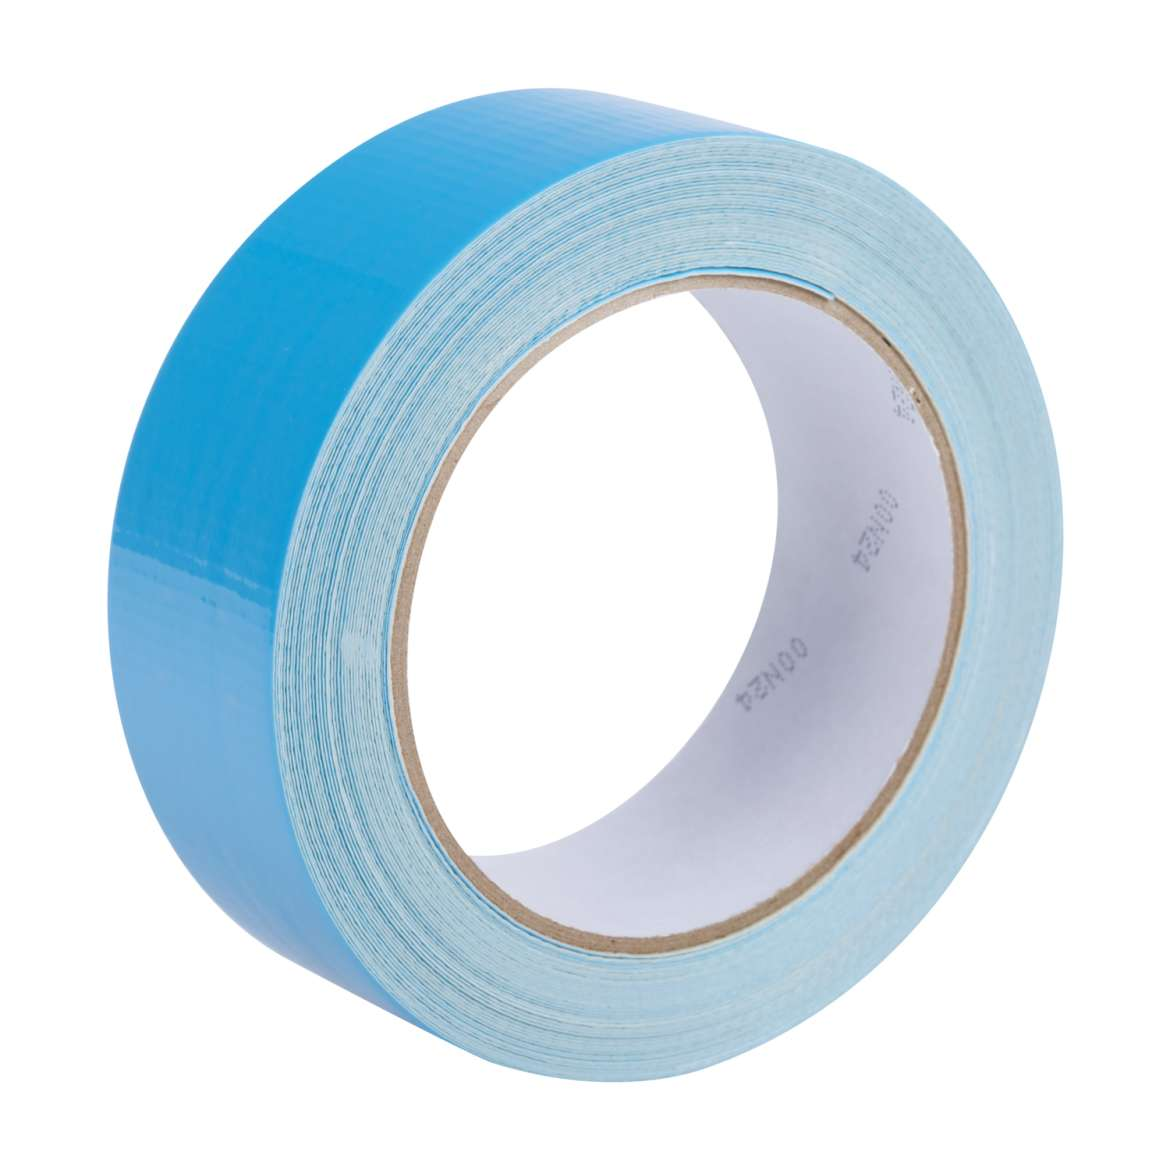 Double Sided Duct Tape Blue 1 41 In X 12 Yd Duck Brand